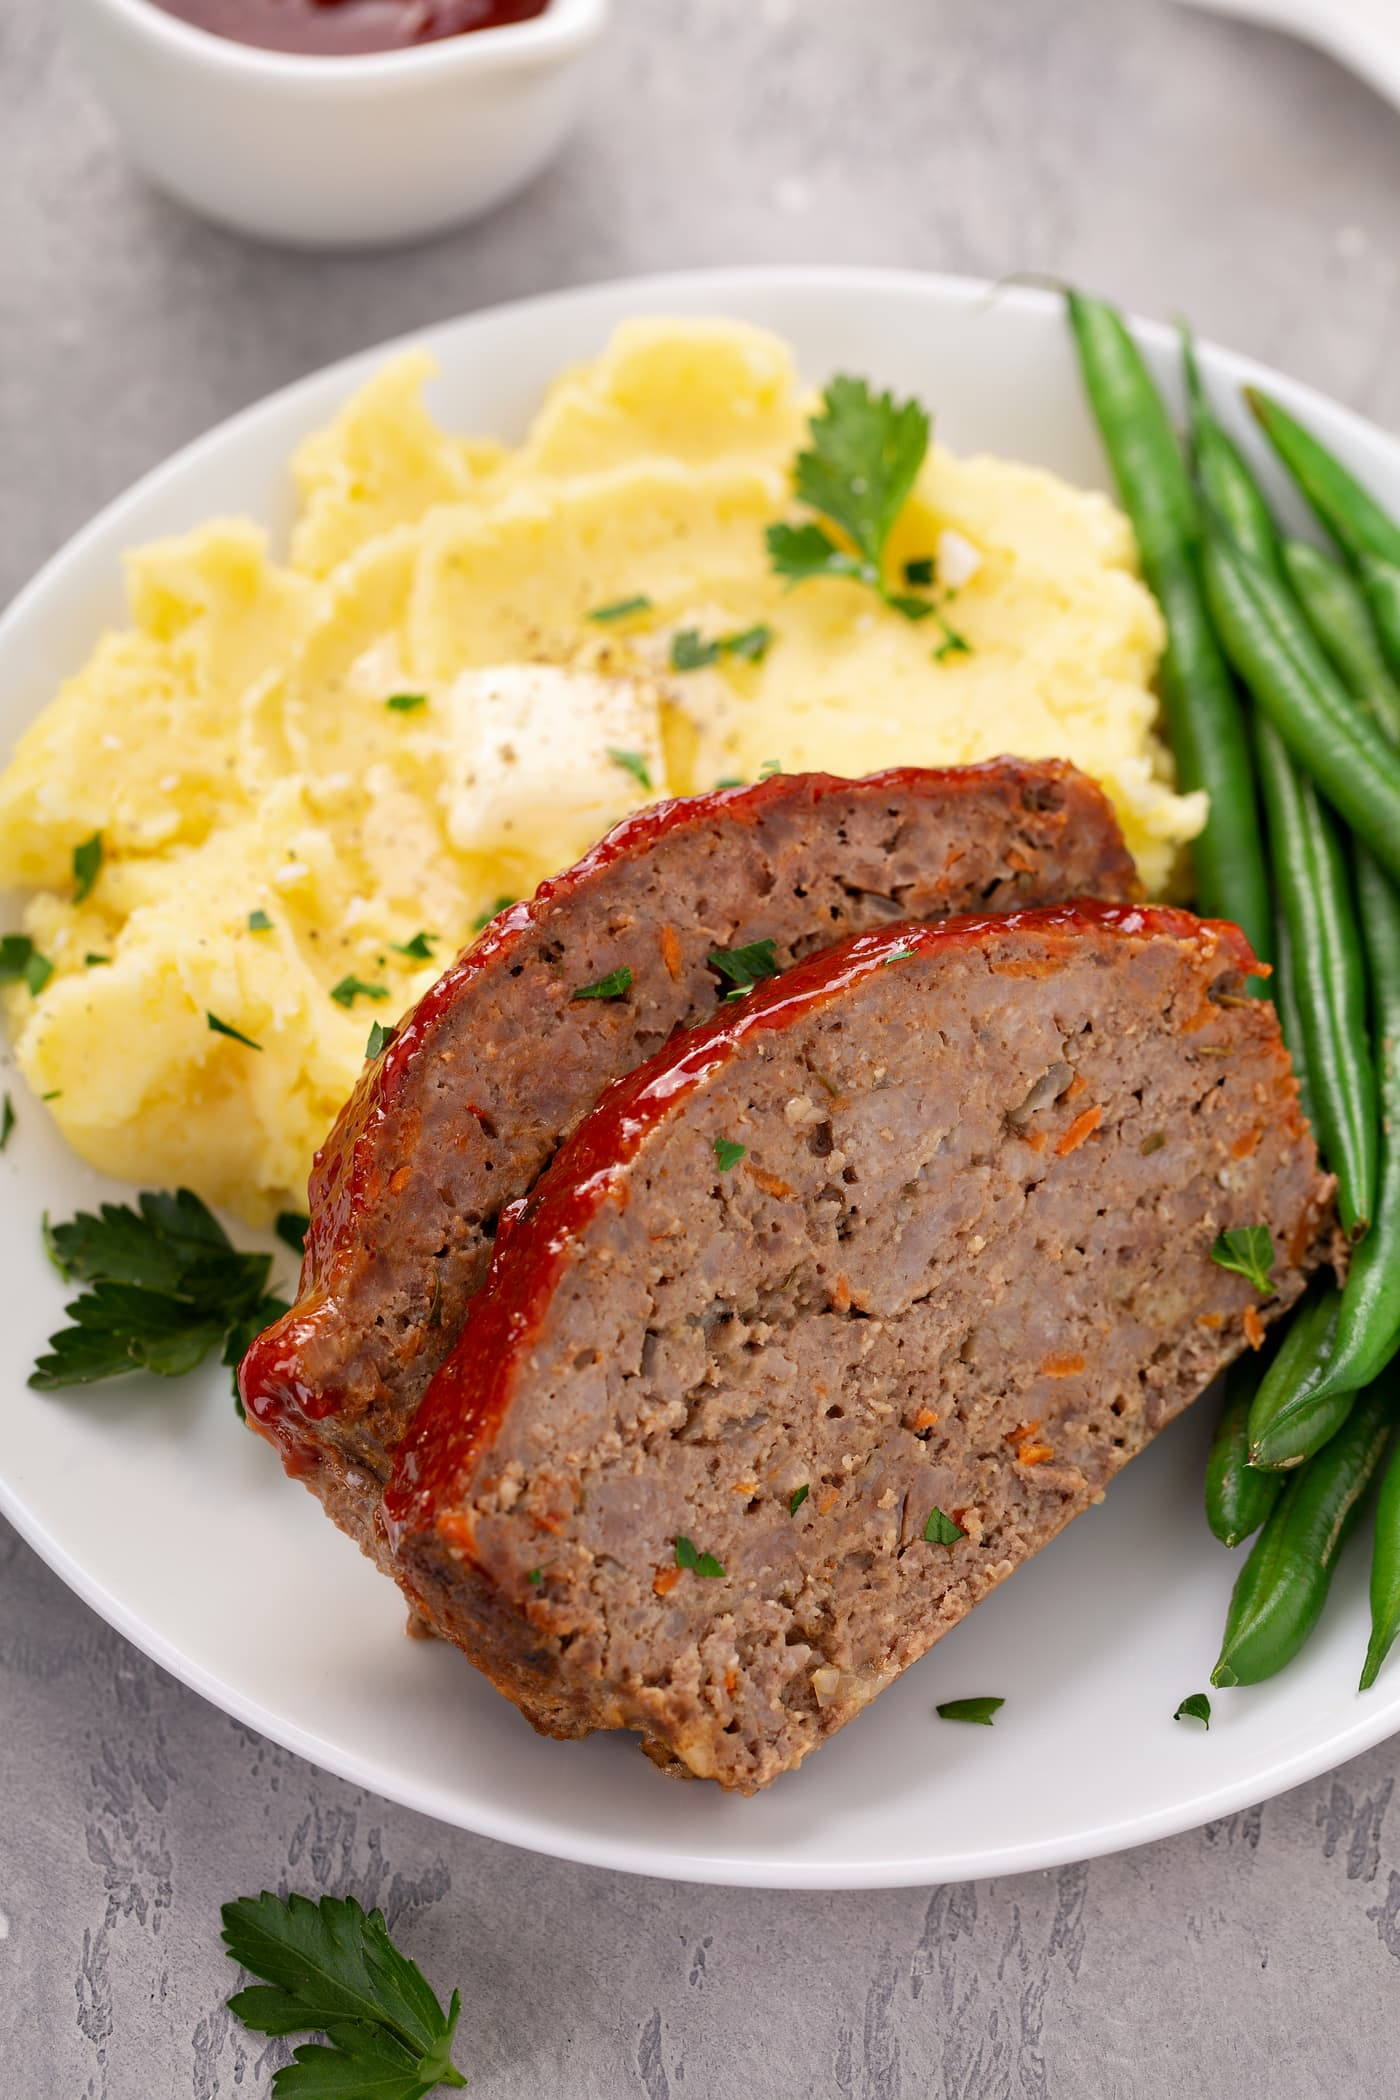 A white dinner plate containing two slices of meatloaf and green beans and mashed potatoes with butter in the middle and sprinkled with parsley leaves.